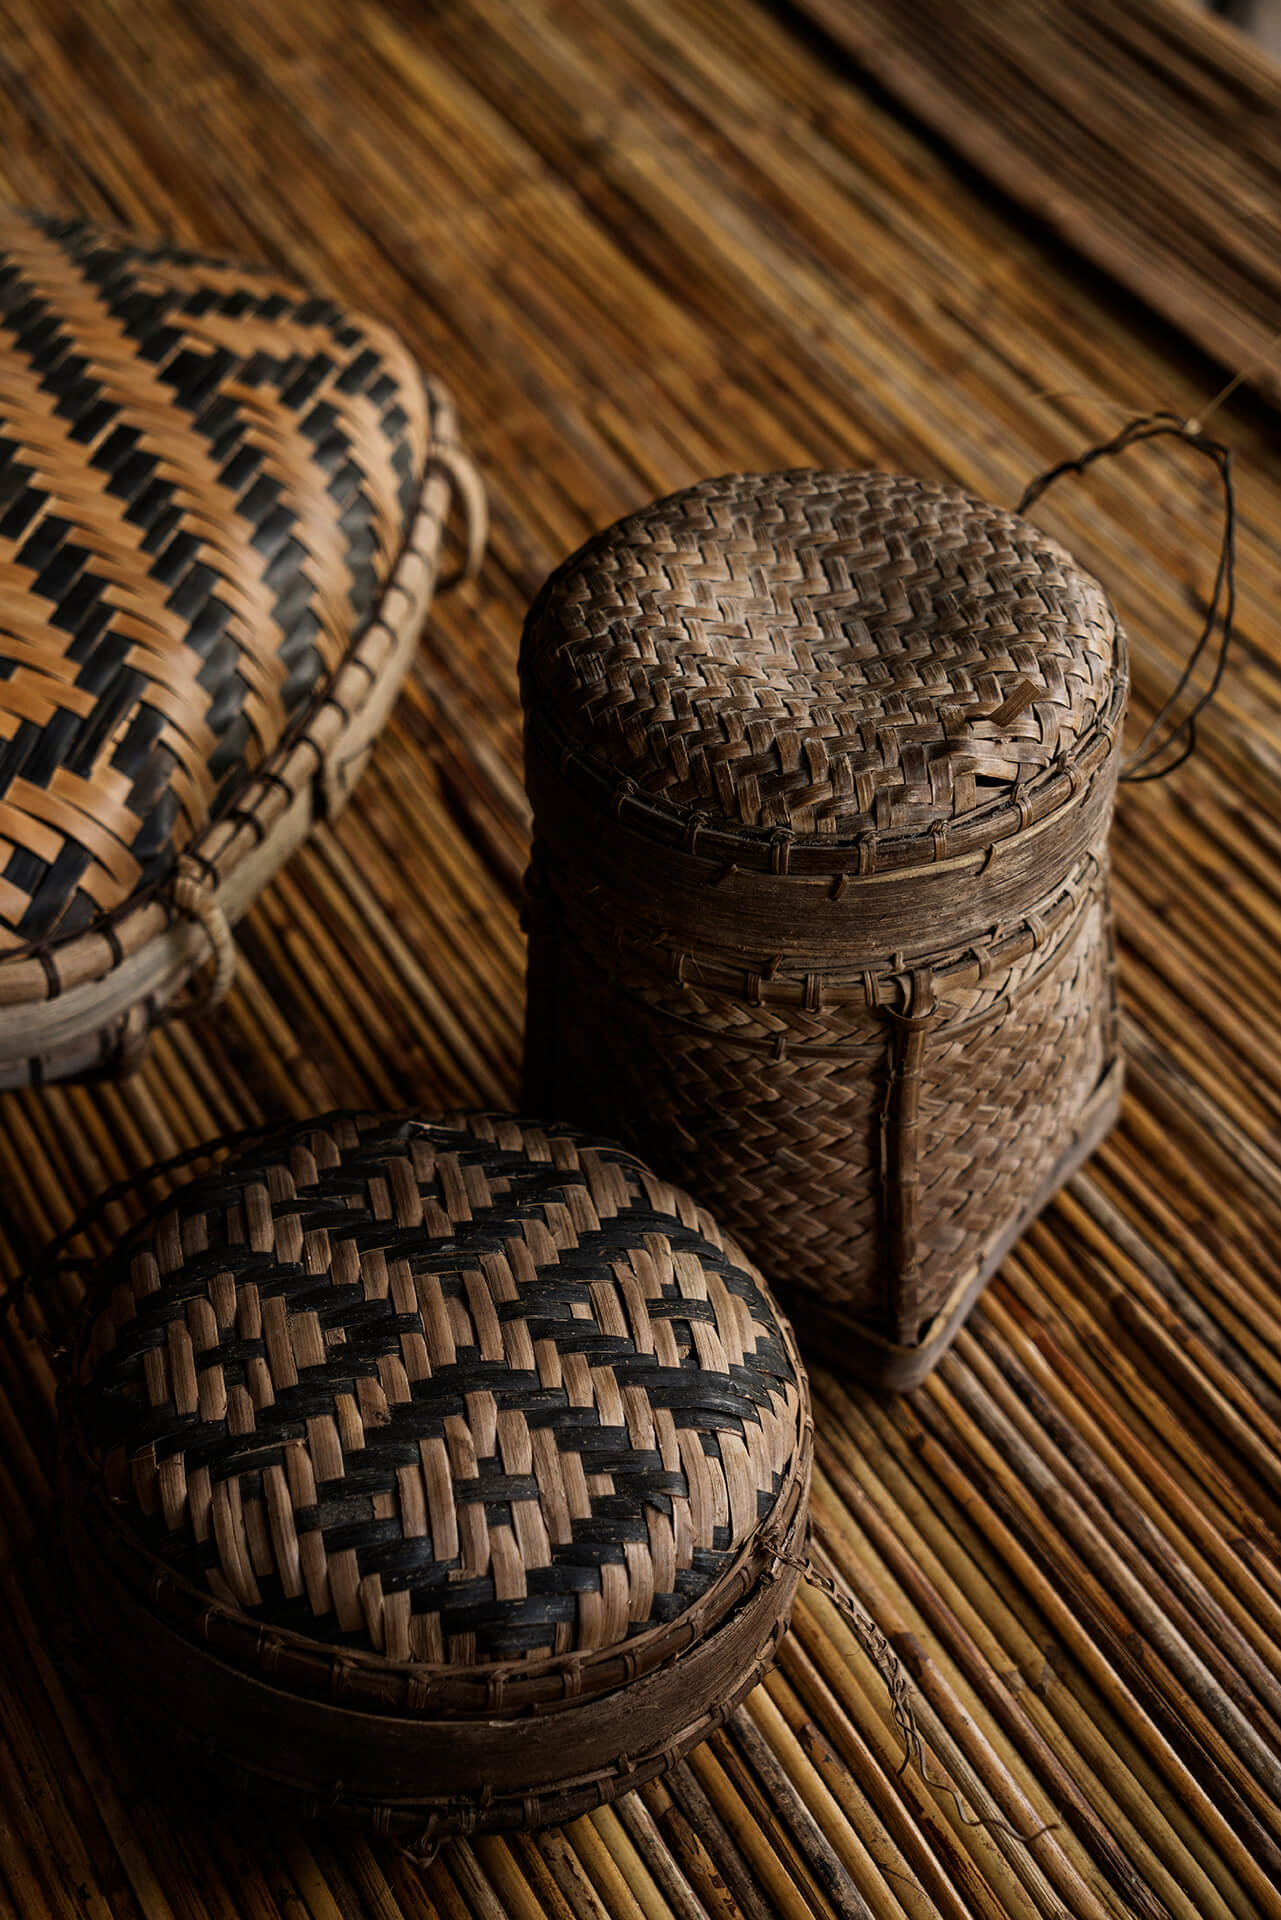 tingkep woven baskets made of rattan